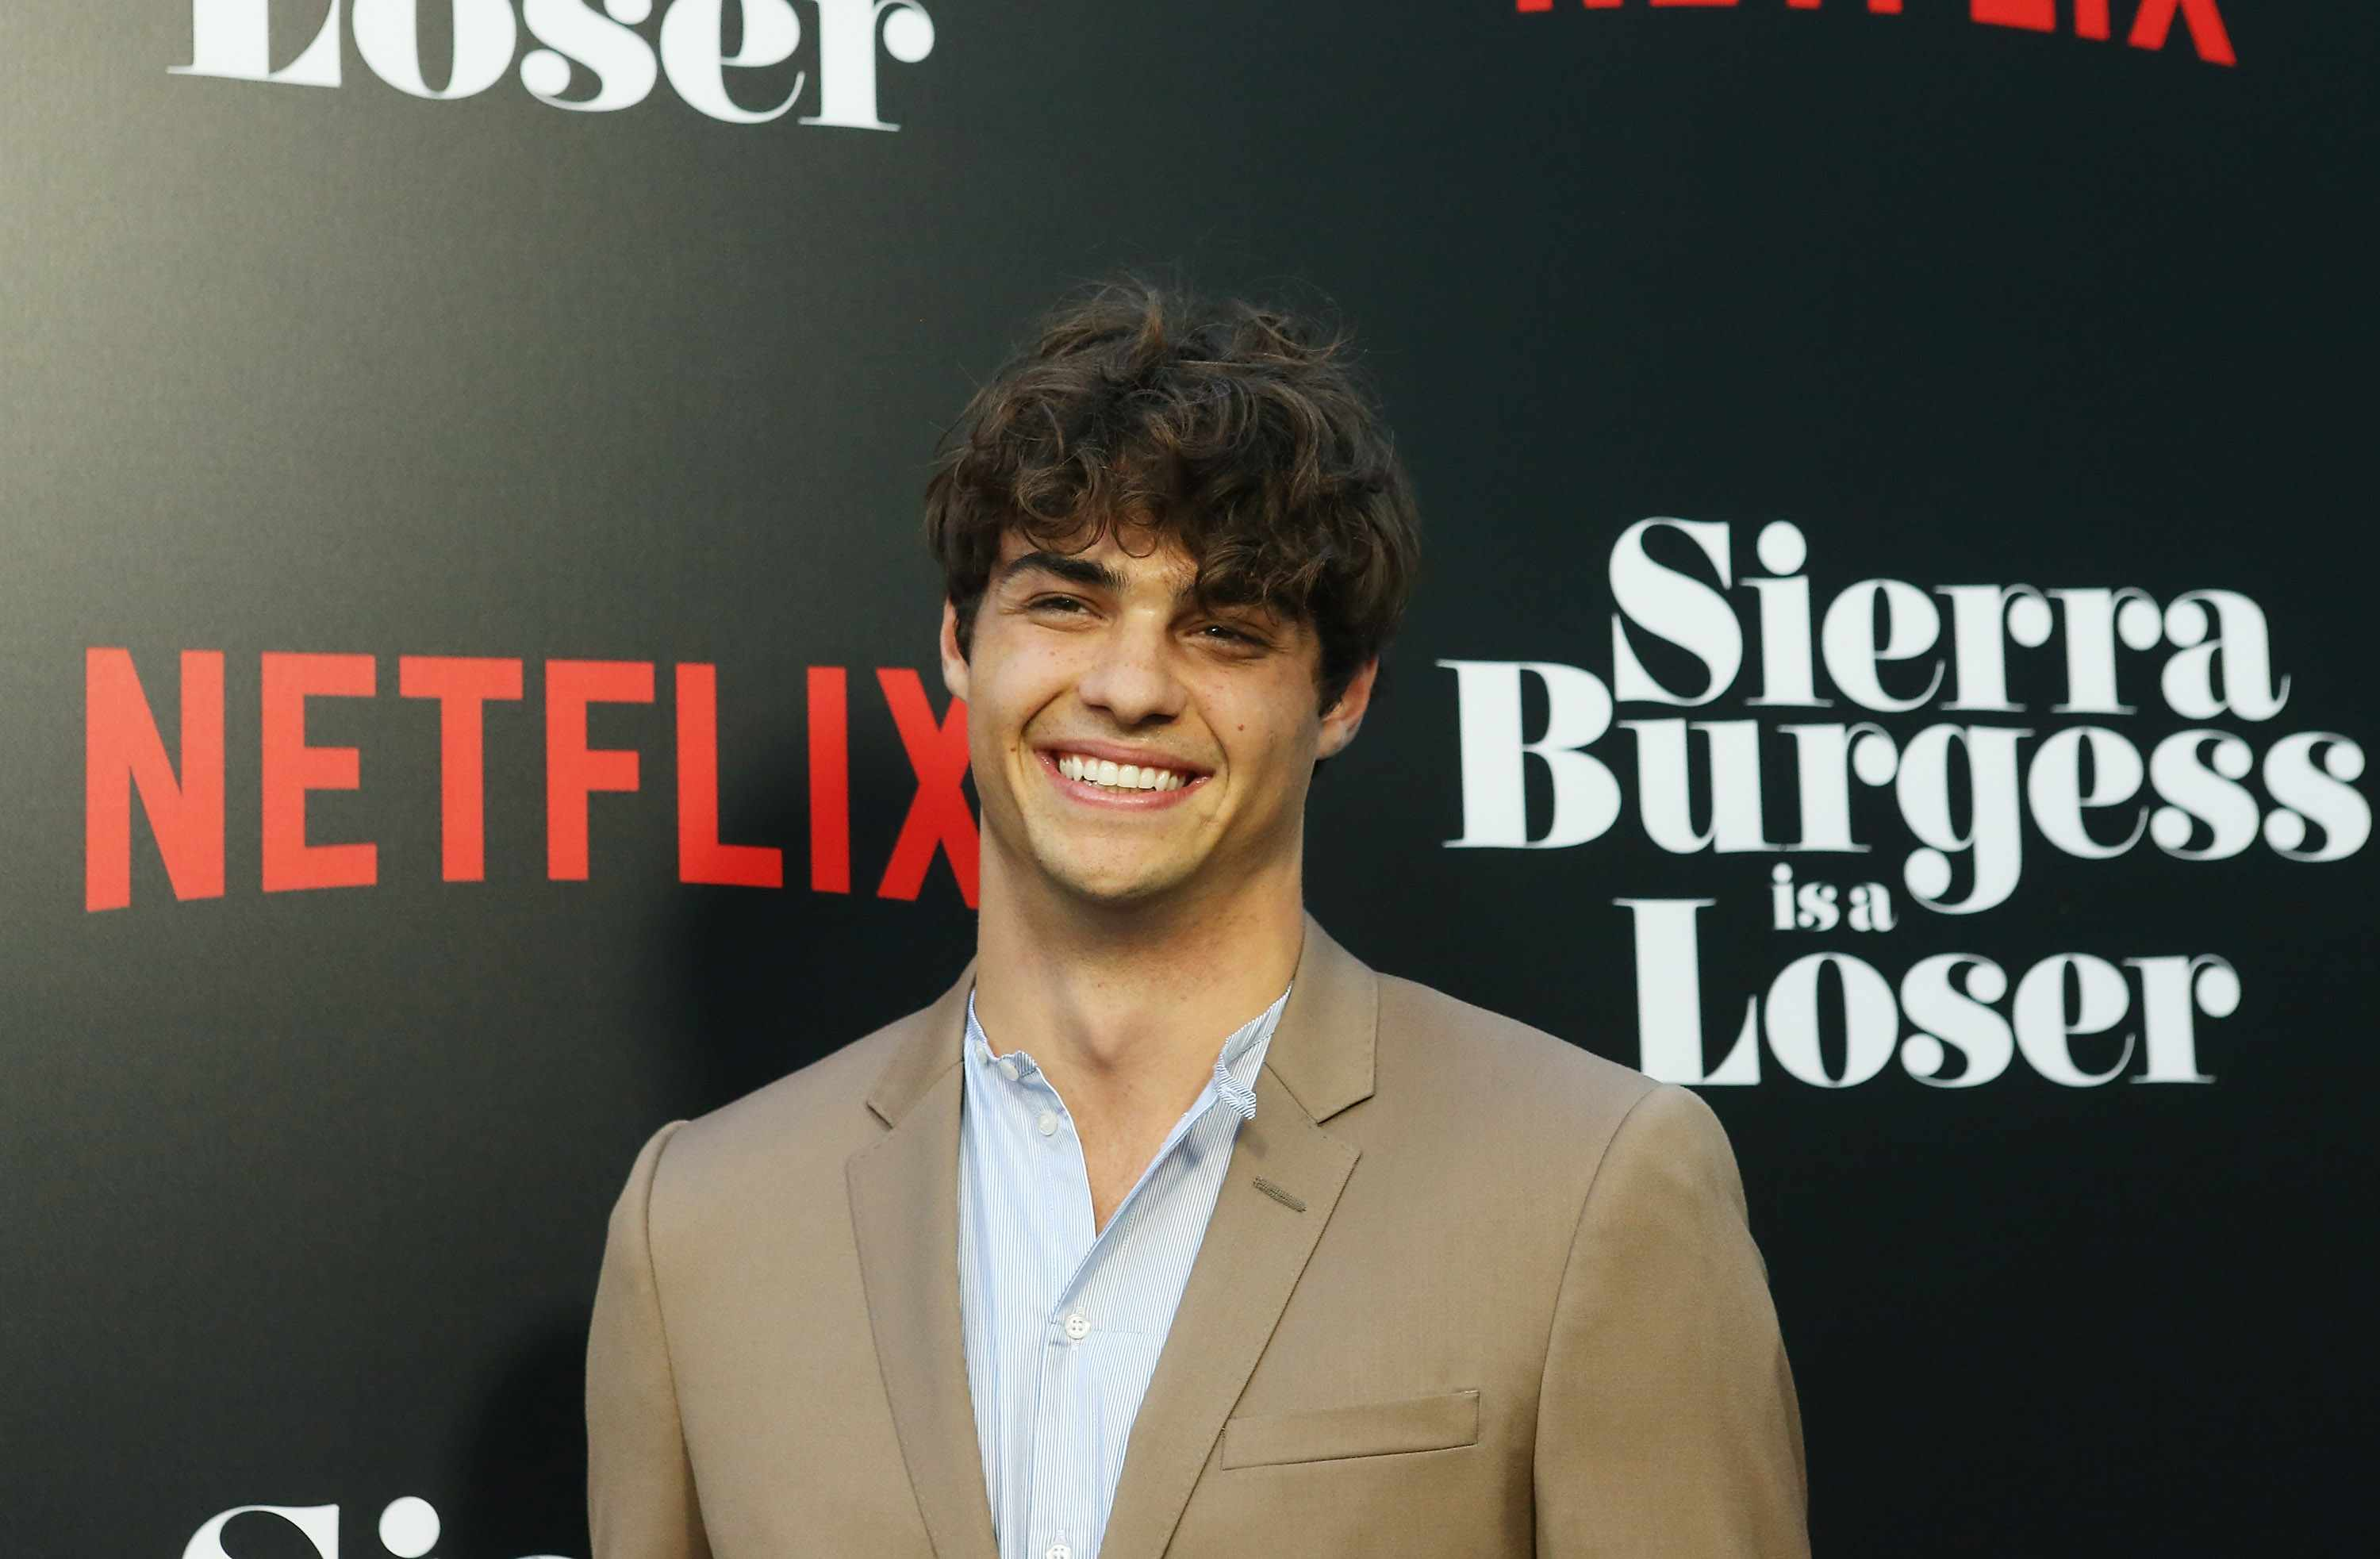 """HOLLYWOOD, CA - AUGUST 30:  Noah Centineo arrives to the Los Angeles premiere of Netflix's """"Sierra Burgess Is A Loser"""" held at ArcLight Hollywood on August 30, 2018 in Hollywood, California.  (Photo by Michael Tran/FilmMagic)"""